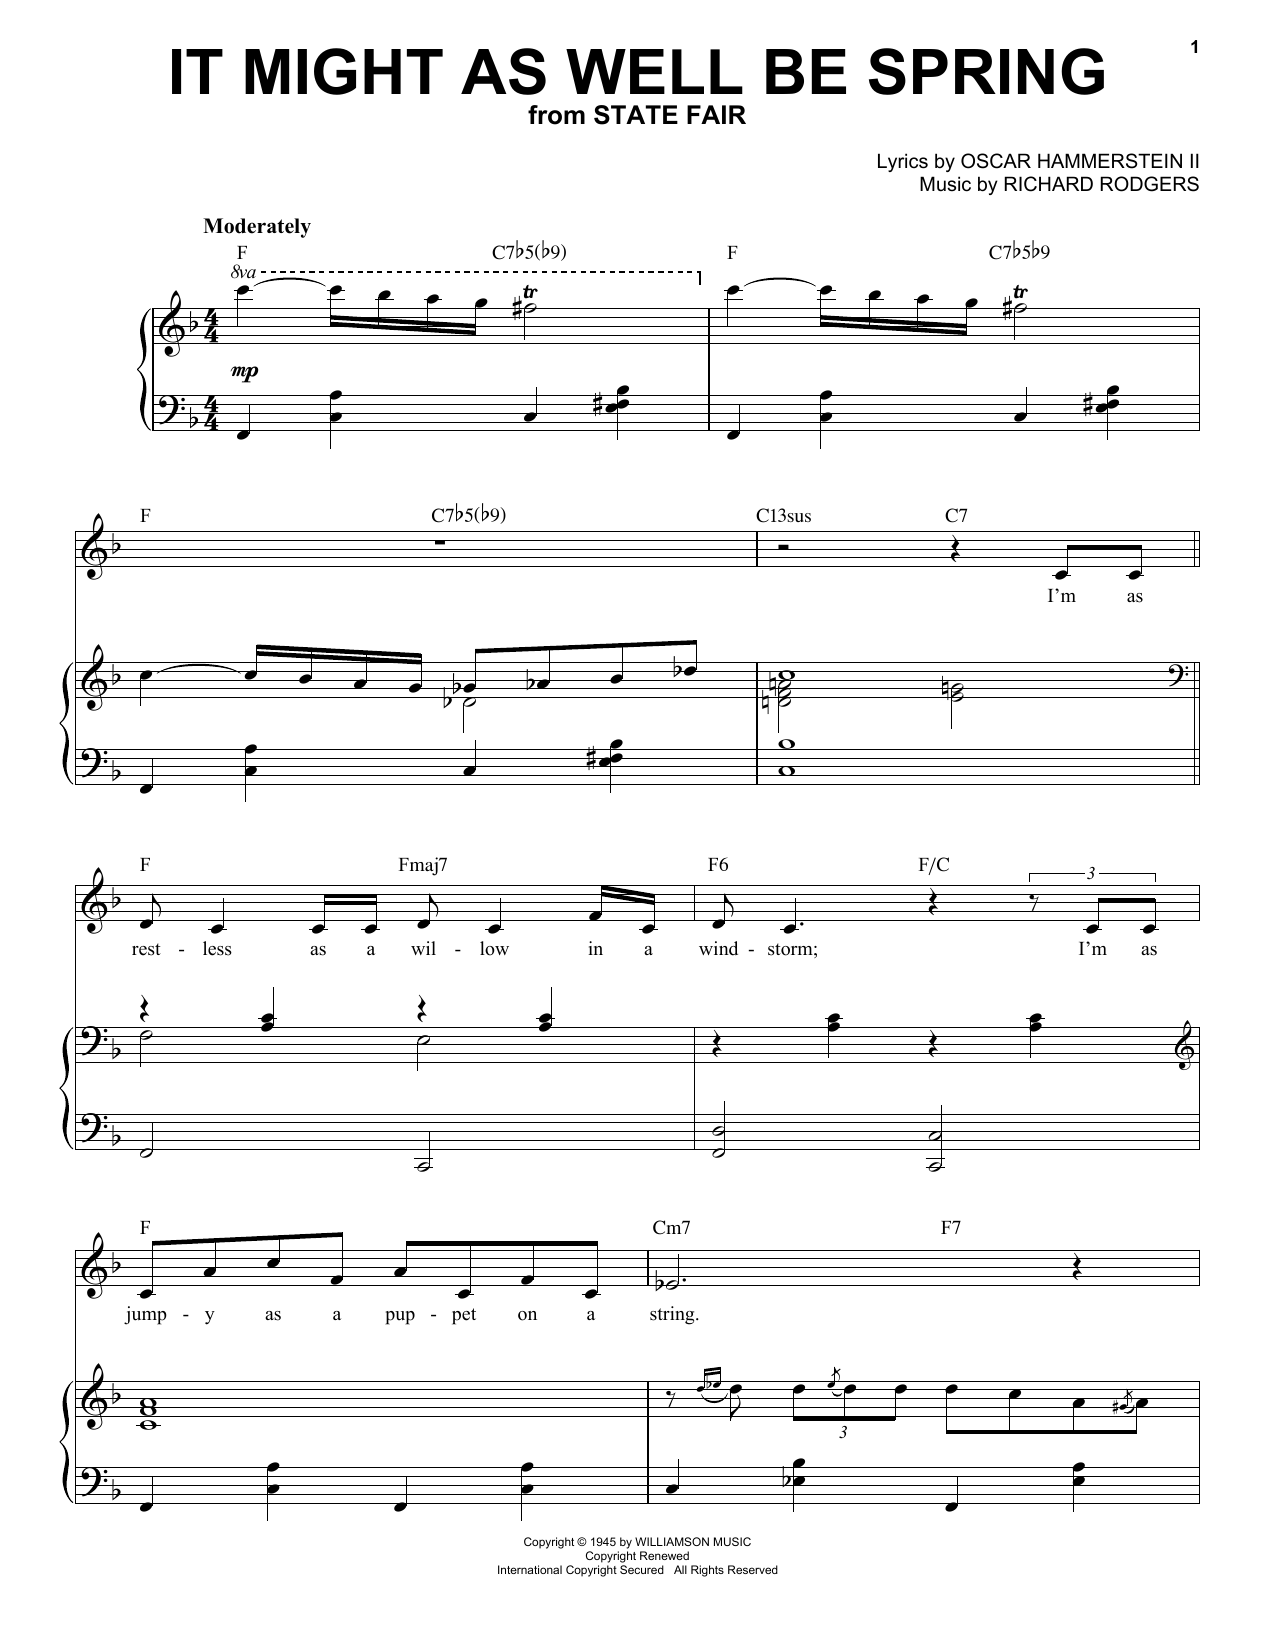 Frank Sinatra It Might As Well Be Spring sheet music notes and chords. Download Printable PDF.